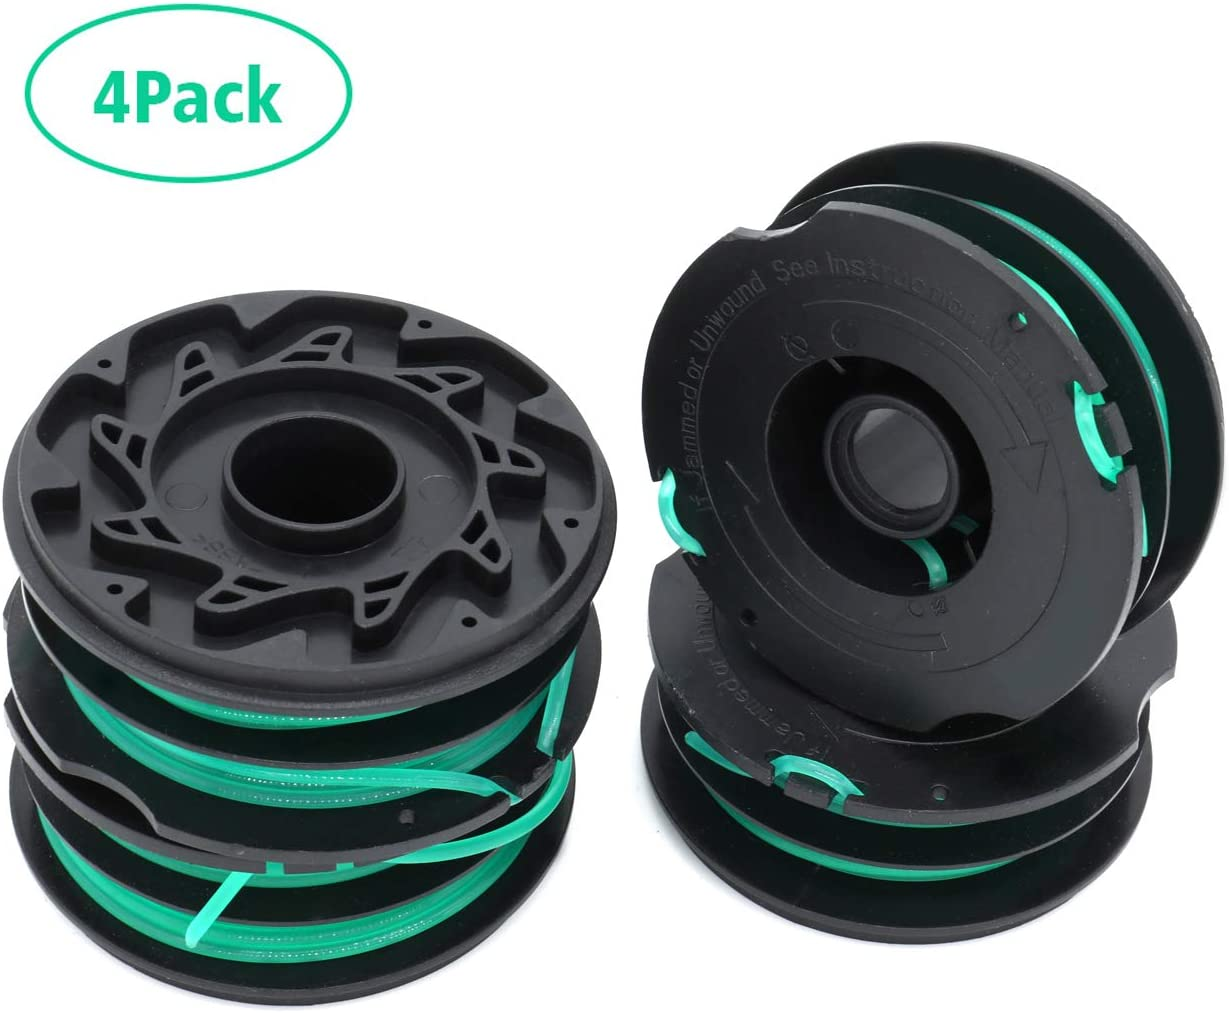 TIOIT DF-080 Trimmer Replacement Spools Compatible with Black Decker GH1000 GH1100 GH2000 Weed Eater String, DF-080 Spool Line Refills, Dual Line Edger Parts 30ft 0.080 inch (4Pack spools)